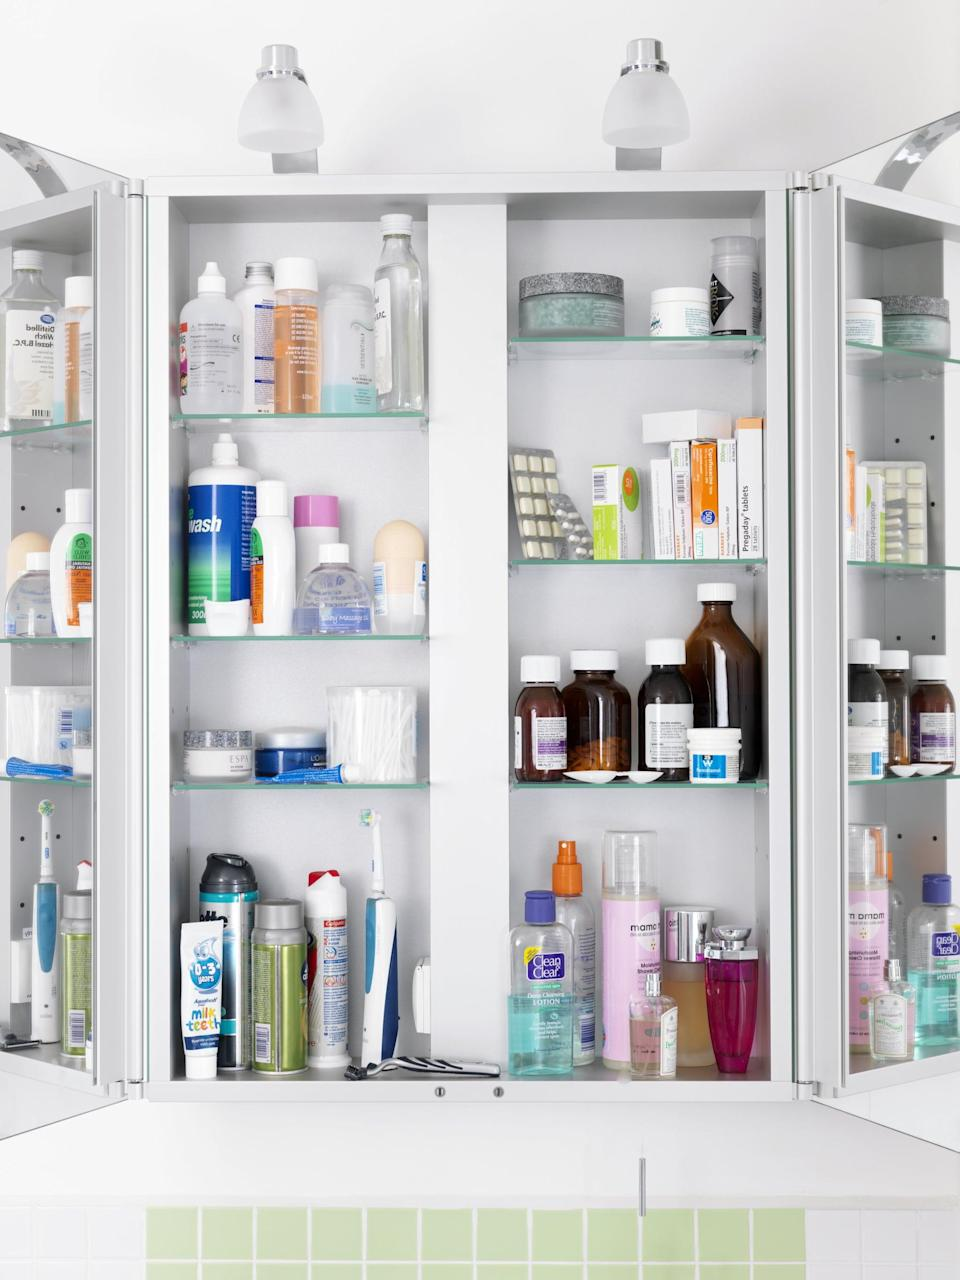 "<p>As fun as it can be to try new skin-care products, doing so too frequently can leave you with more woes than you started with. </p> <p>""I know that it can be frustrating to have breakouts and blemishes, but the tendency is to research new products and try too many at one time or switch them out before the active ingredients have a chance to make an impact on the skin,"" said <a href=""https://www.instagram.com/dr.coreyhartman"" class=""link rapid-noclick-resp"" rel=""nofollow noopener"" target=""_blank"" data-ylk=""slk:Corey L. Hartman"">Corey L. Hartman</a>, MD, board-certified dermatologist and founder of Skin Wellness Dermatology in Birmingham, AL. ""Most ingredients will take at least four to six weeks of consistent use before making changes that are noticeable, so hang in there and give them a chance to work.""</p> <p>If after six weeks of using a product you still don't notice a difference, then you should see your dermatologist to find a better solution.</p>"